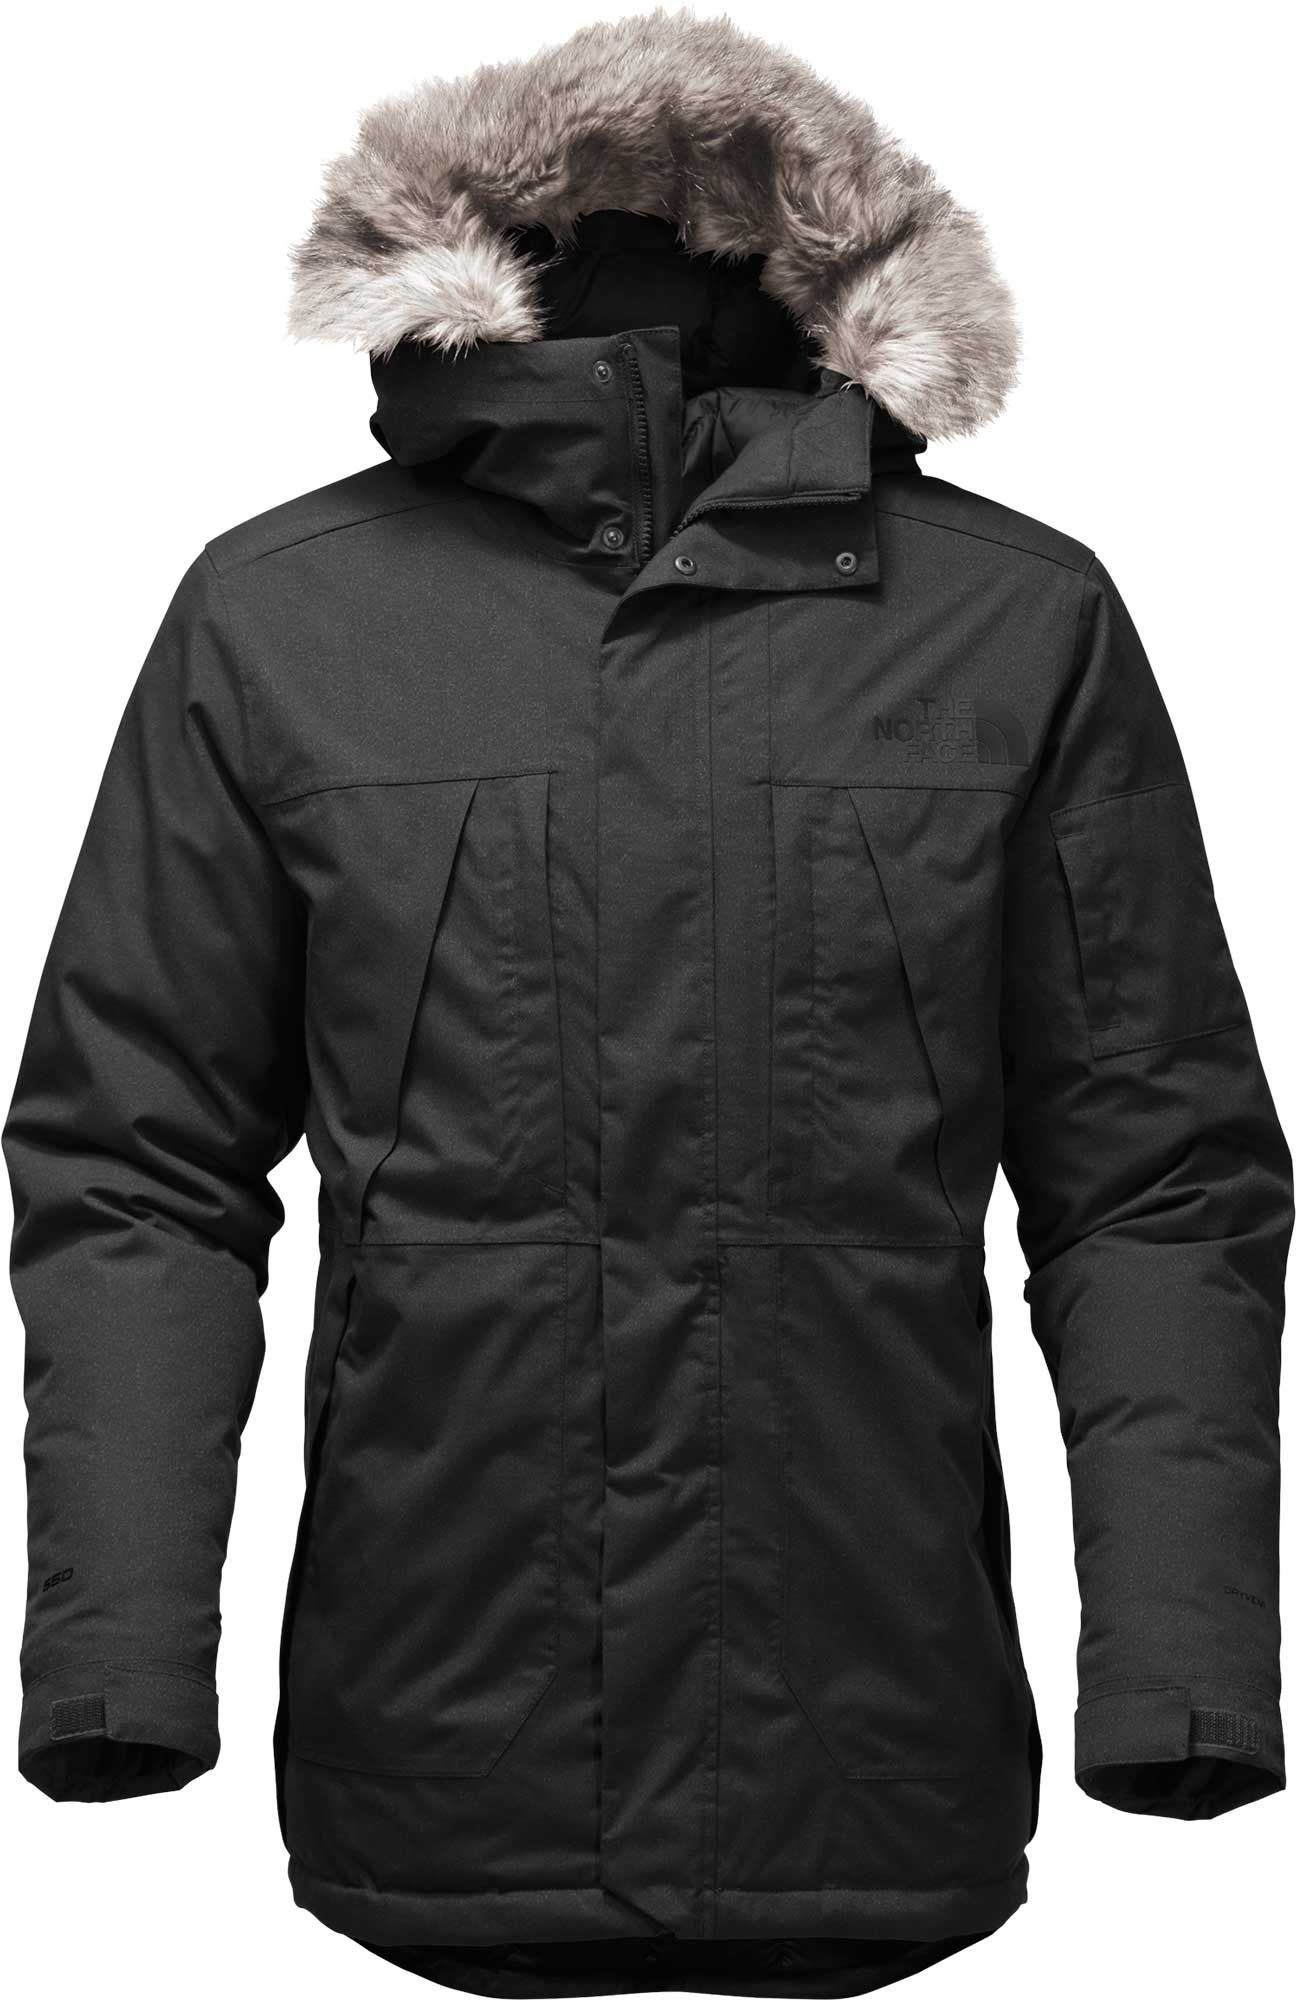 The North Face Men's Outer Boroughs Insulated Parka